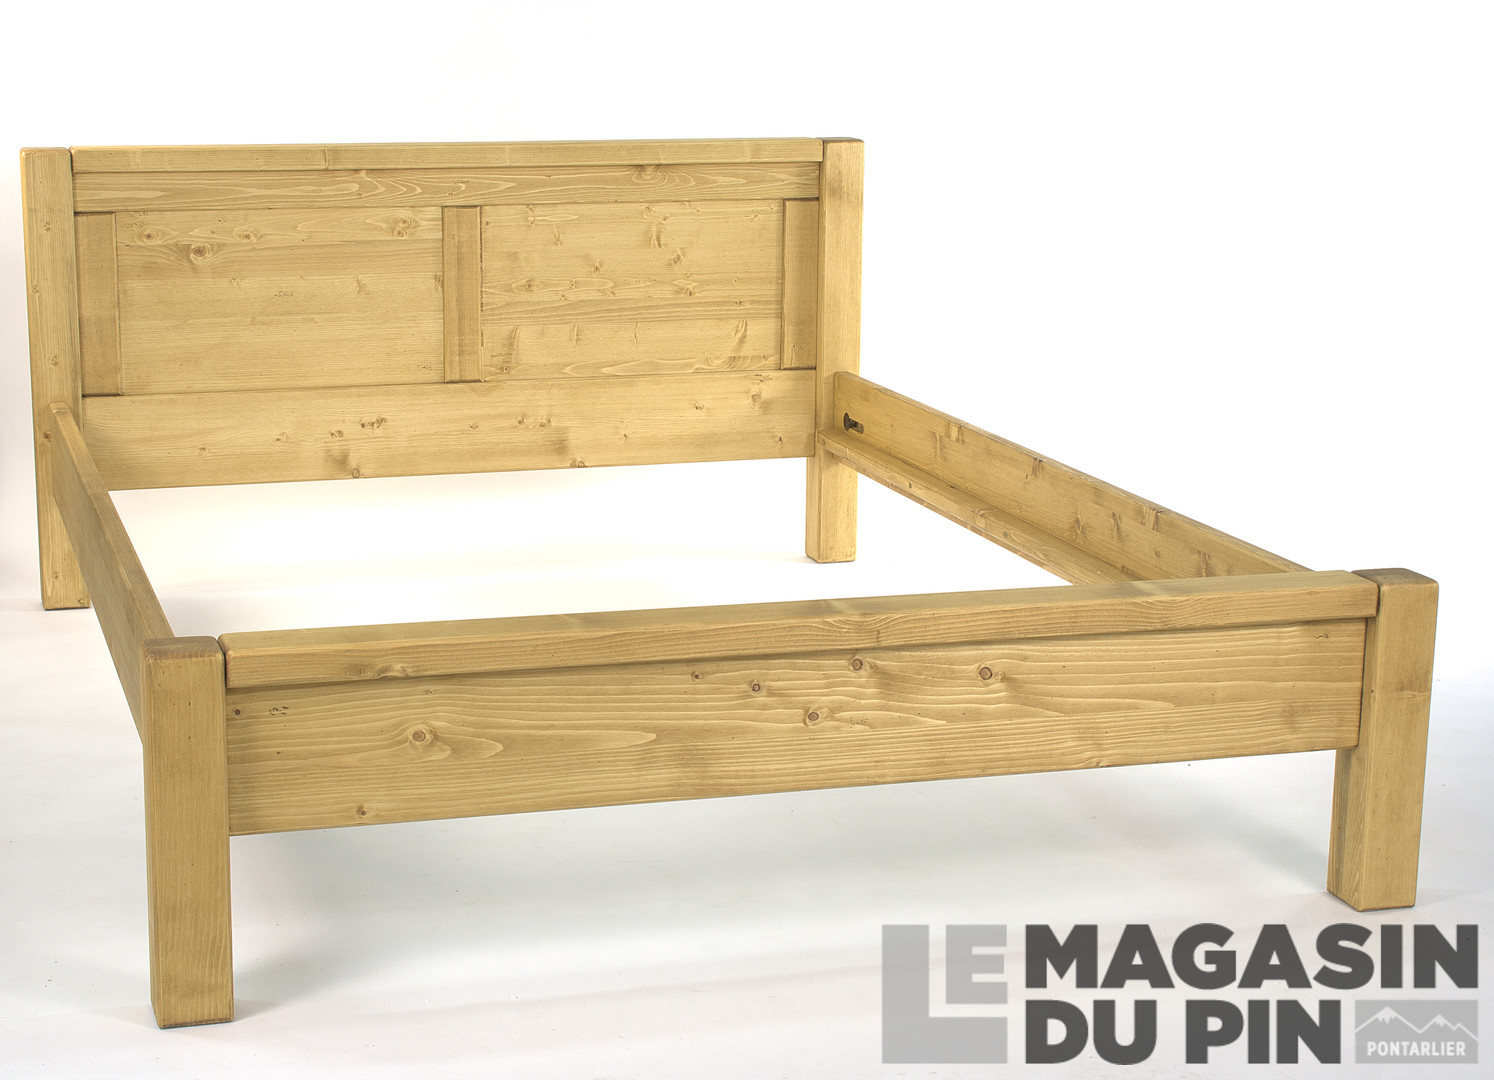 lit en pin massif 140x190 adriana pieds bas le magasin du pin. Black Bedroom Furniture Sets. Home Design Ideas